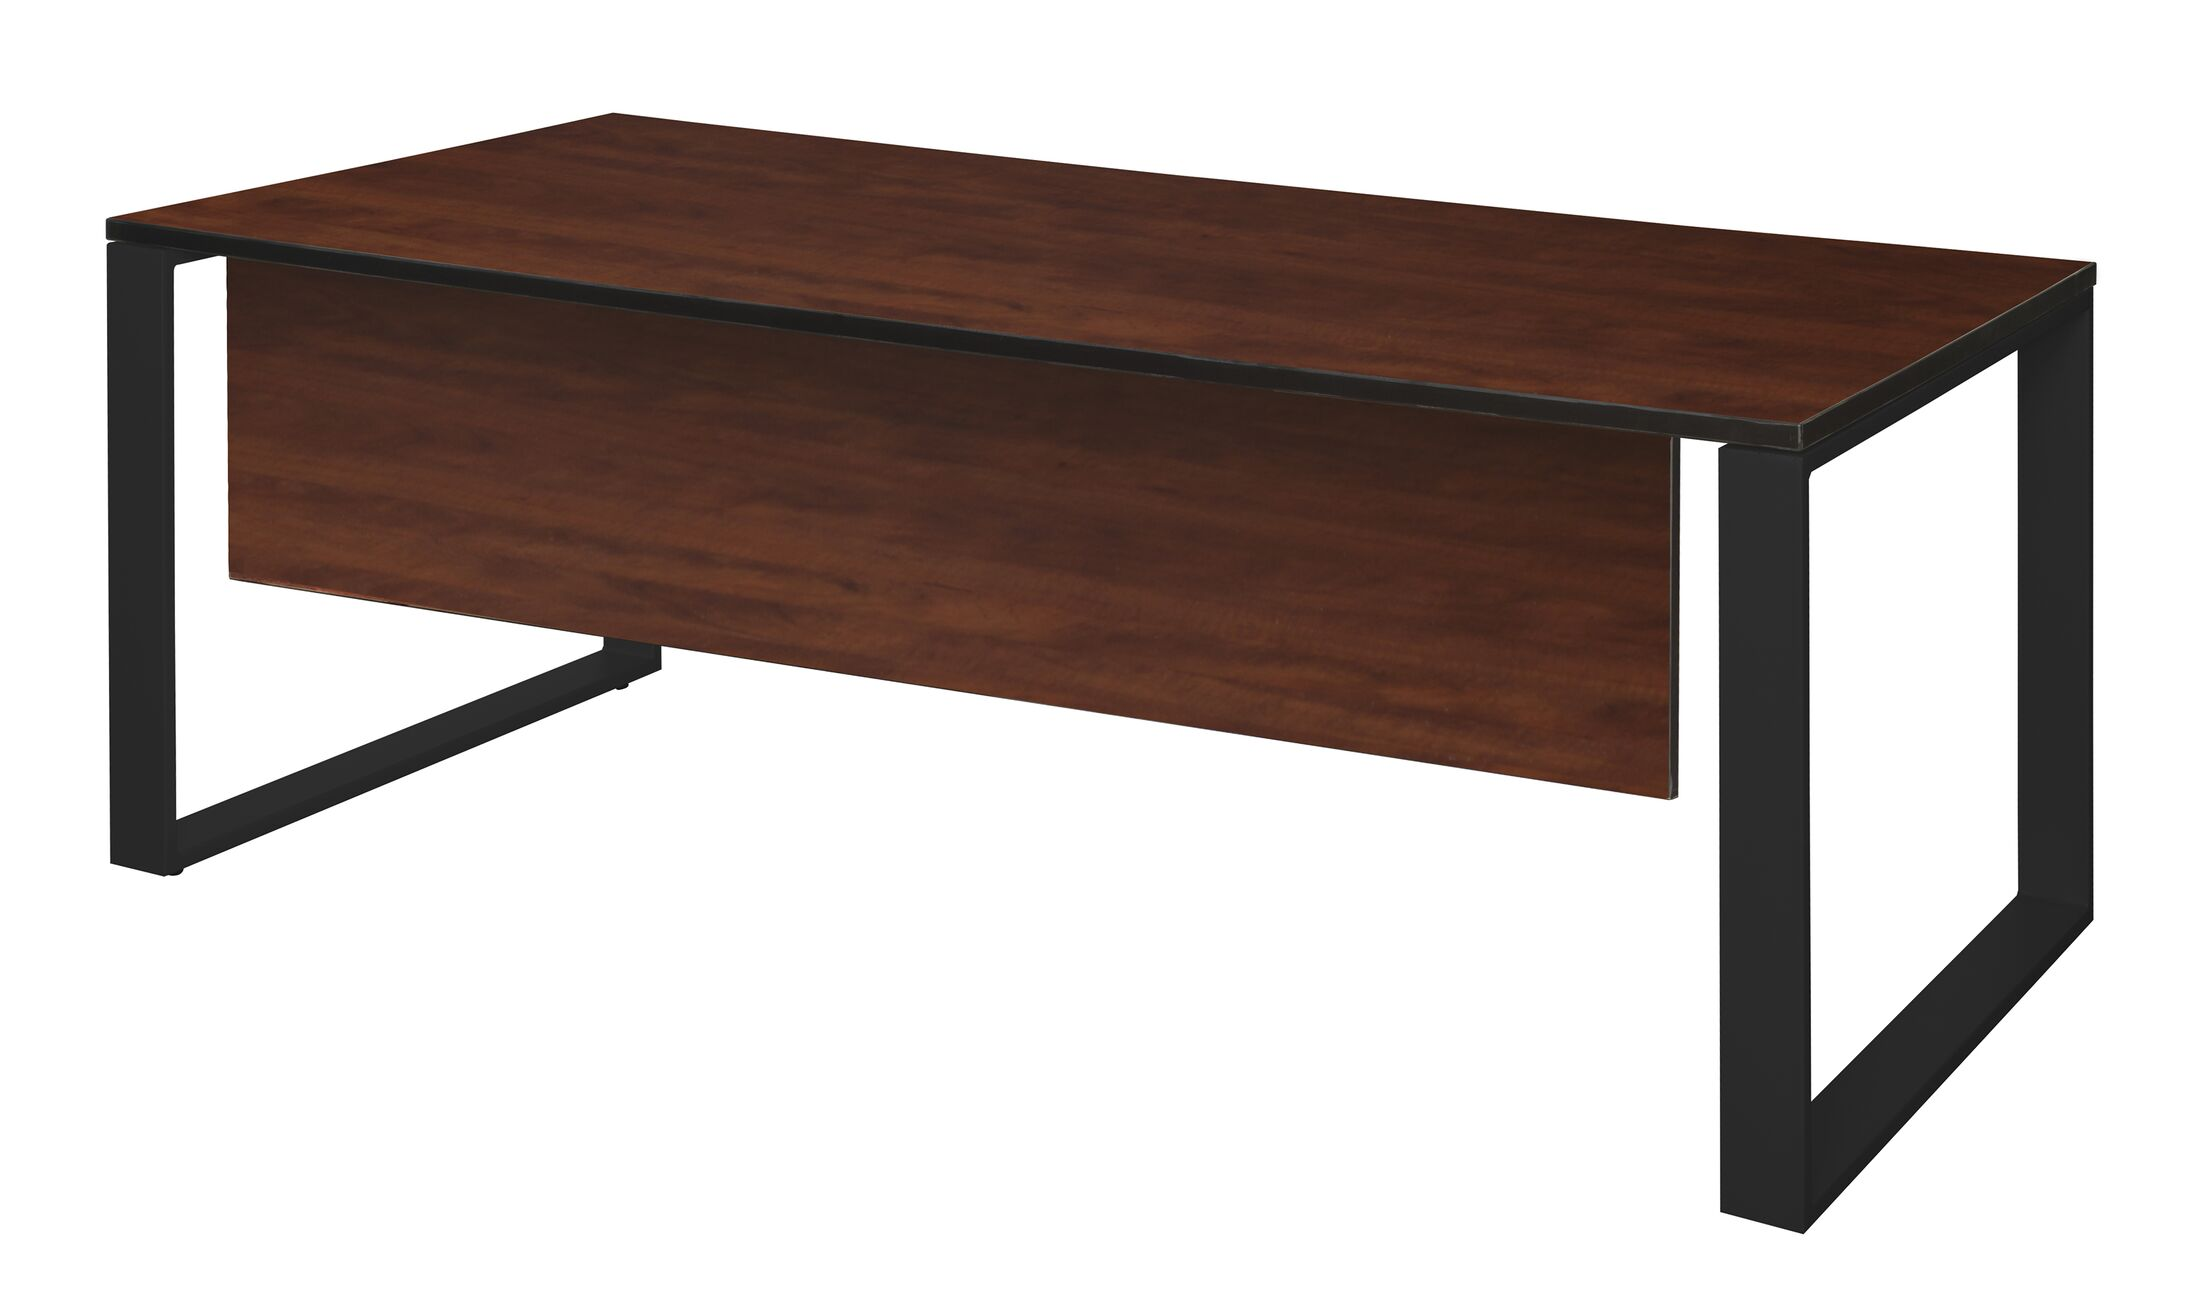 Mireya Training Table with Modesty Panel Tabletop Finish: Cherry, Size: 30